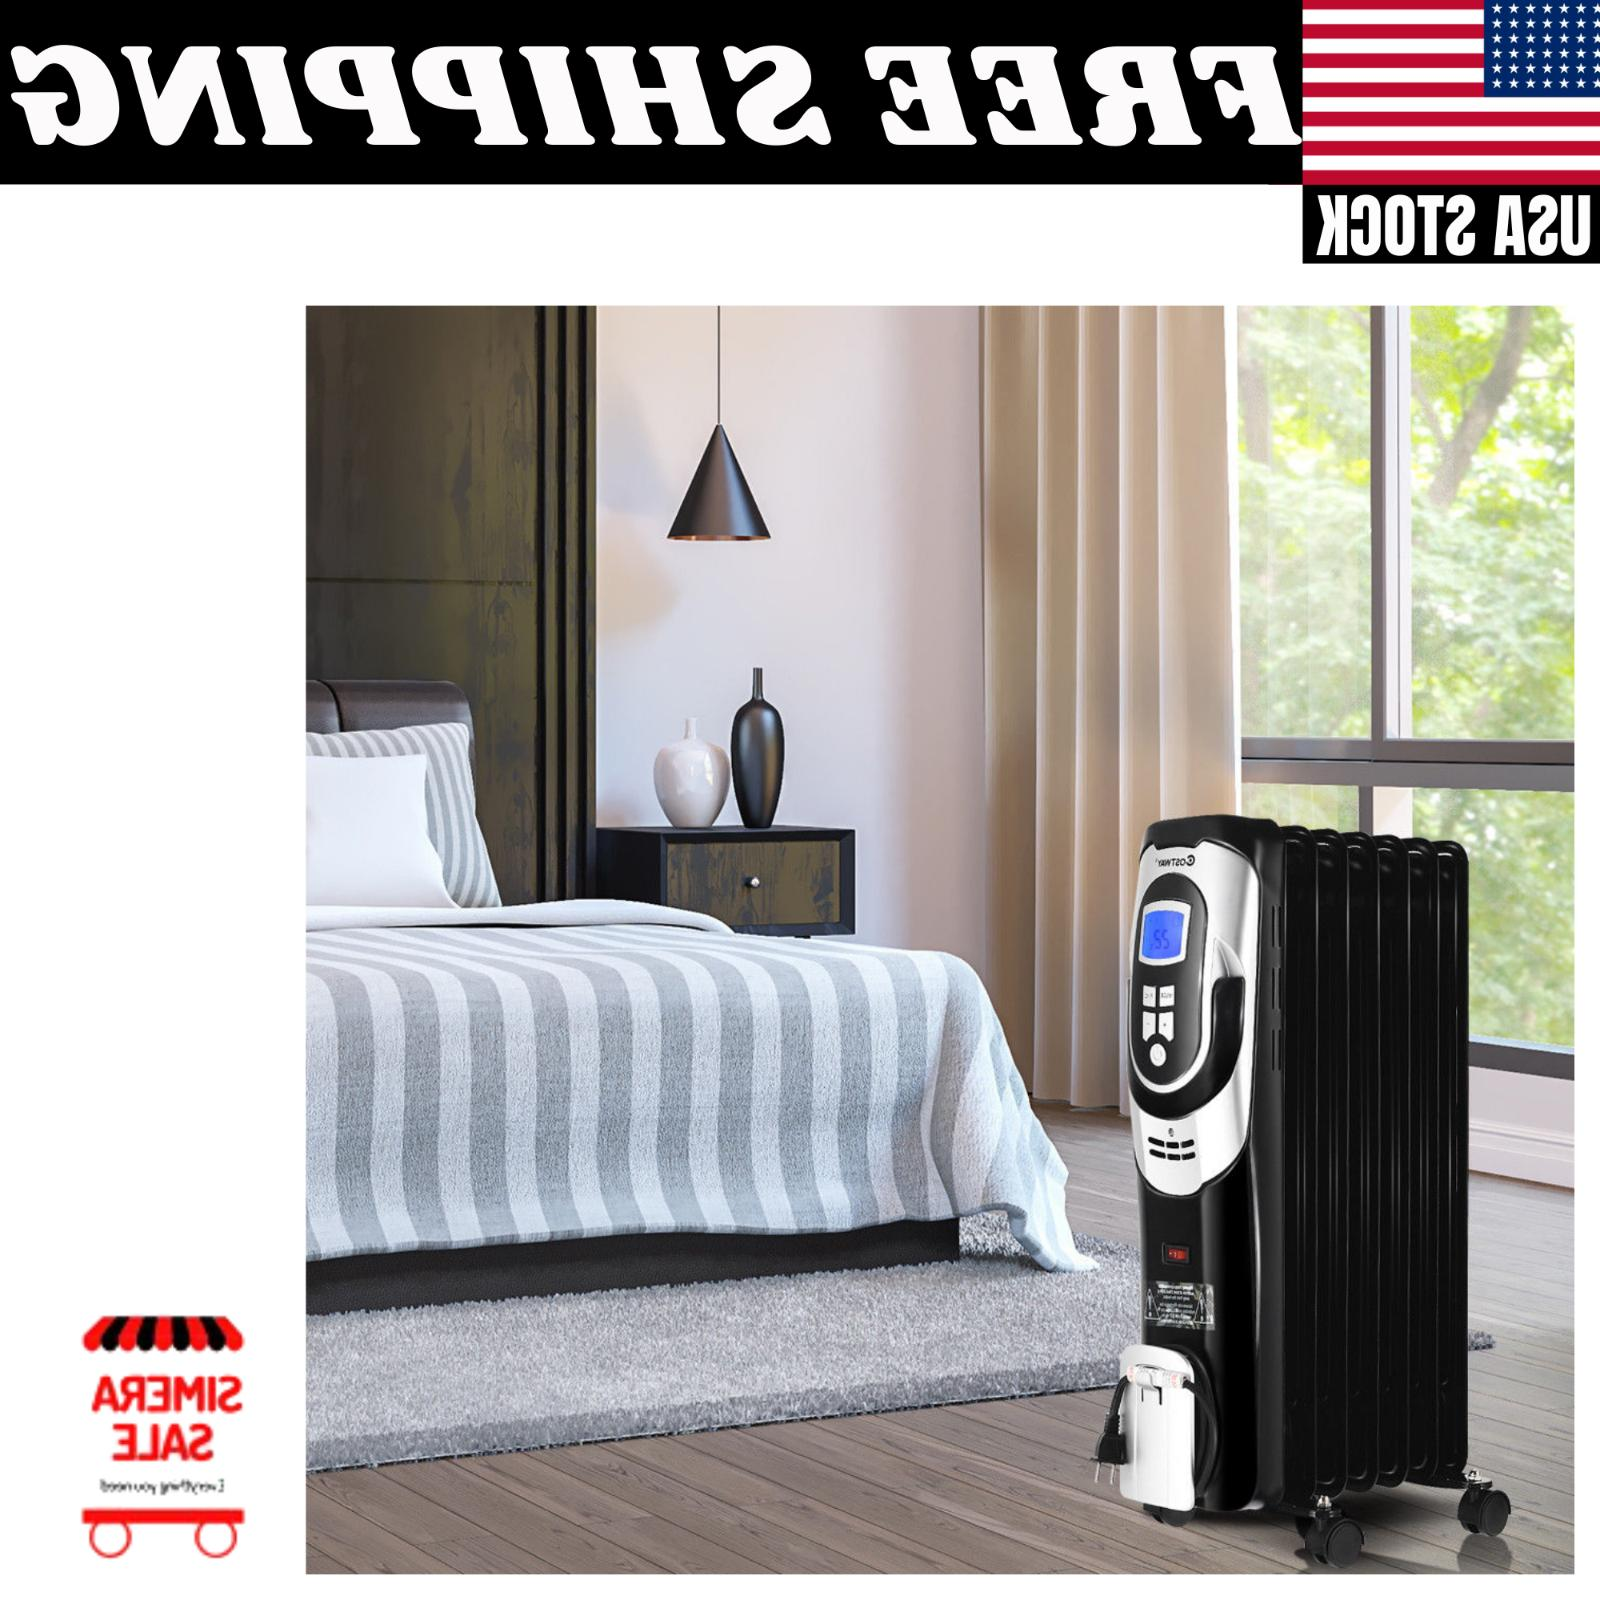 1500W Electric Filled Heater Safety Shut-Off